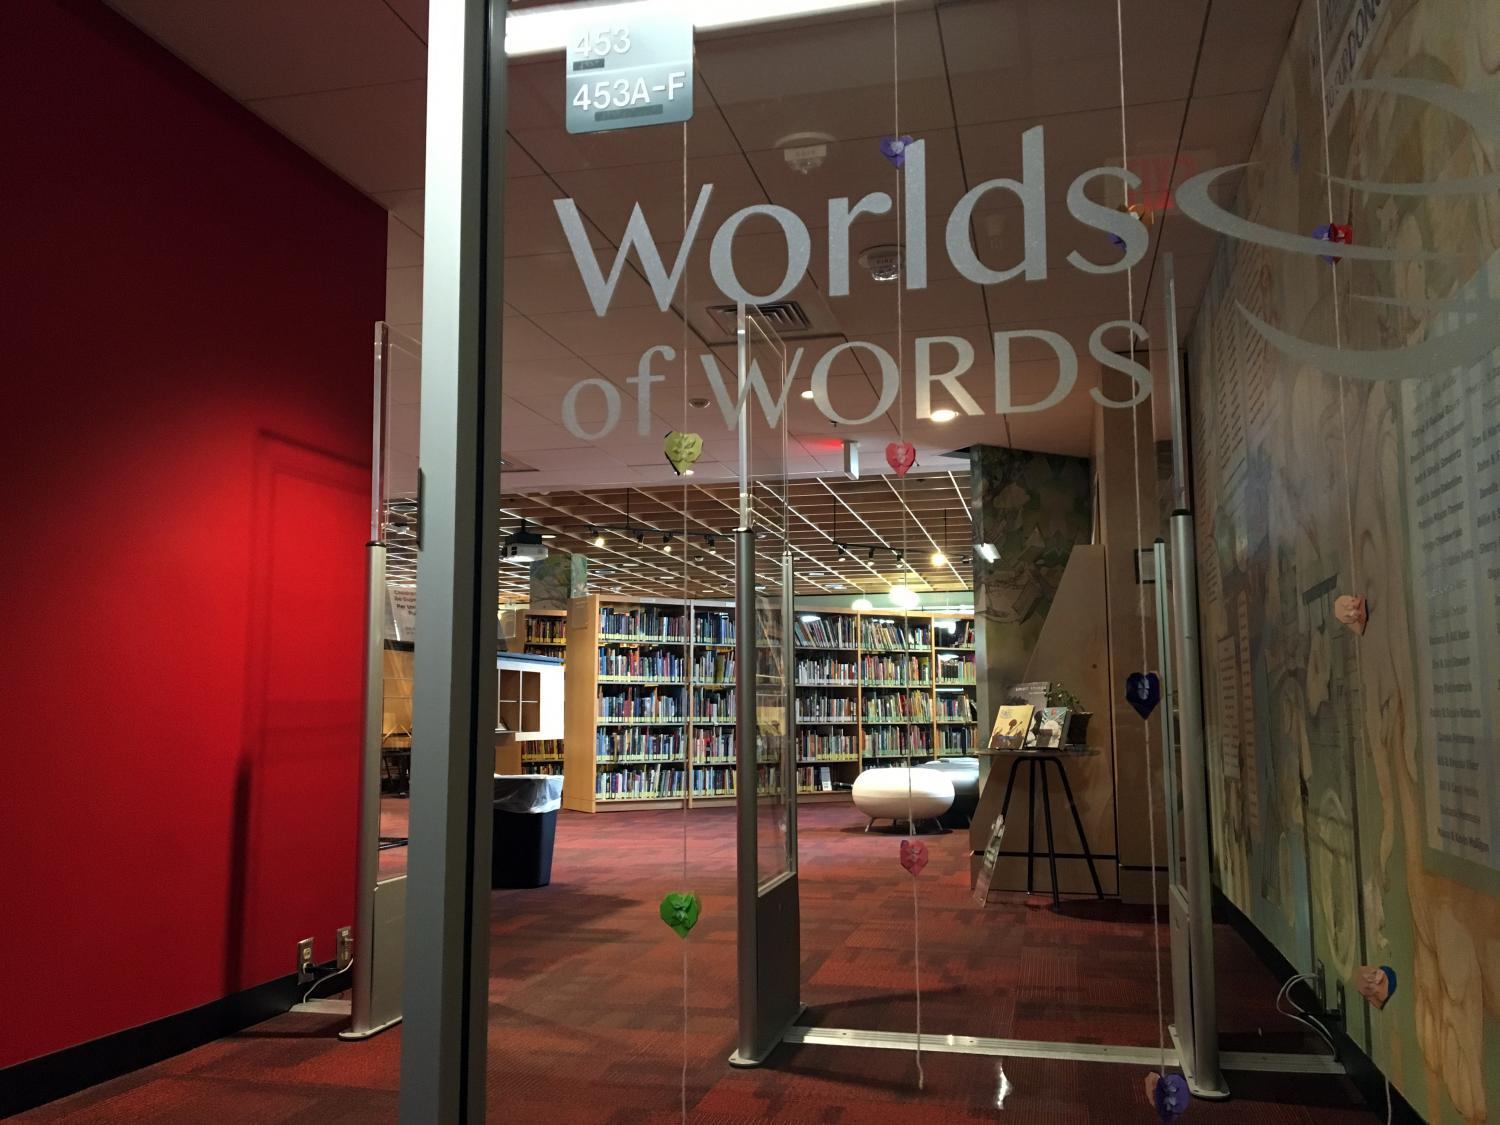 Worlds of Words entrance